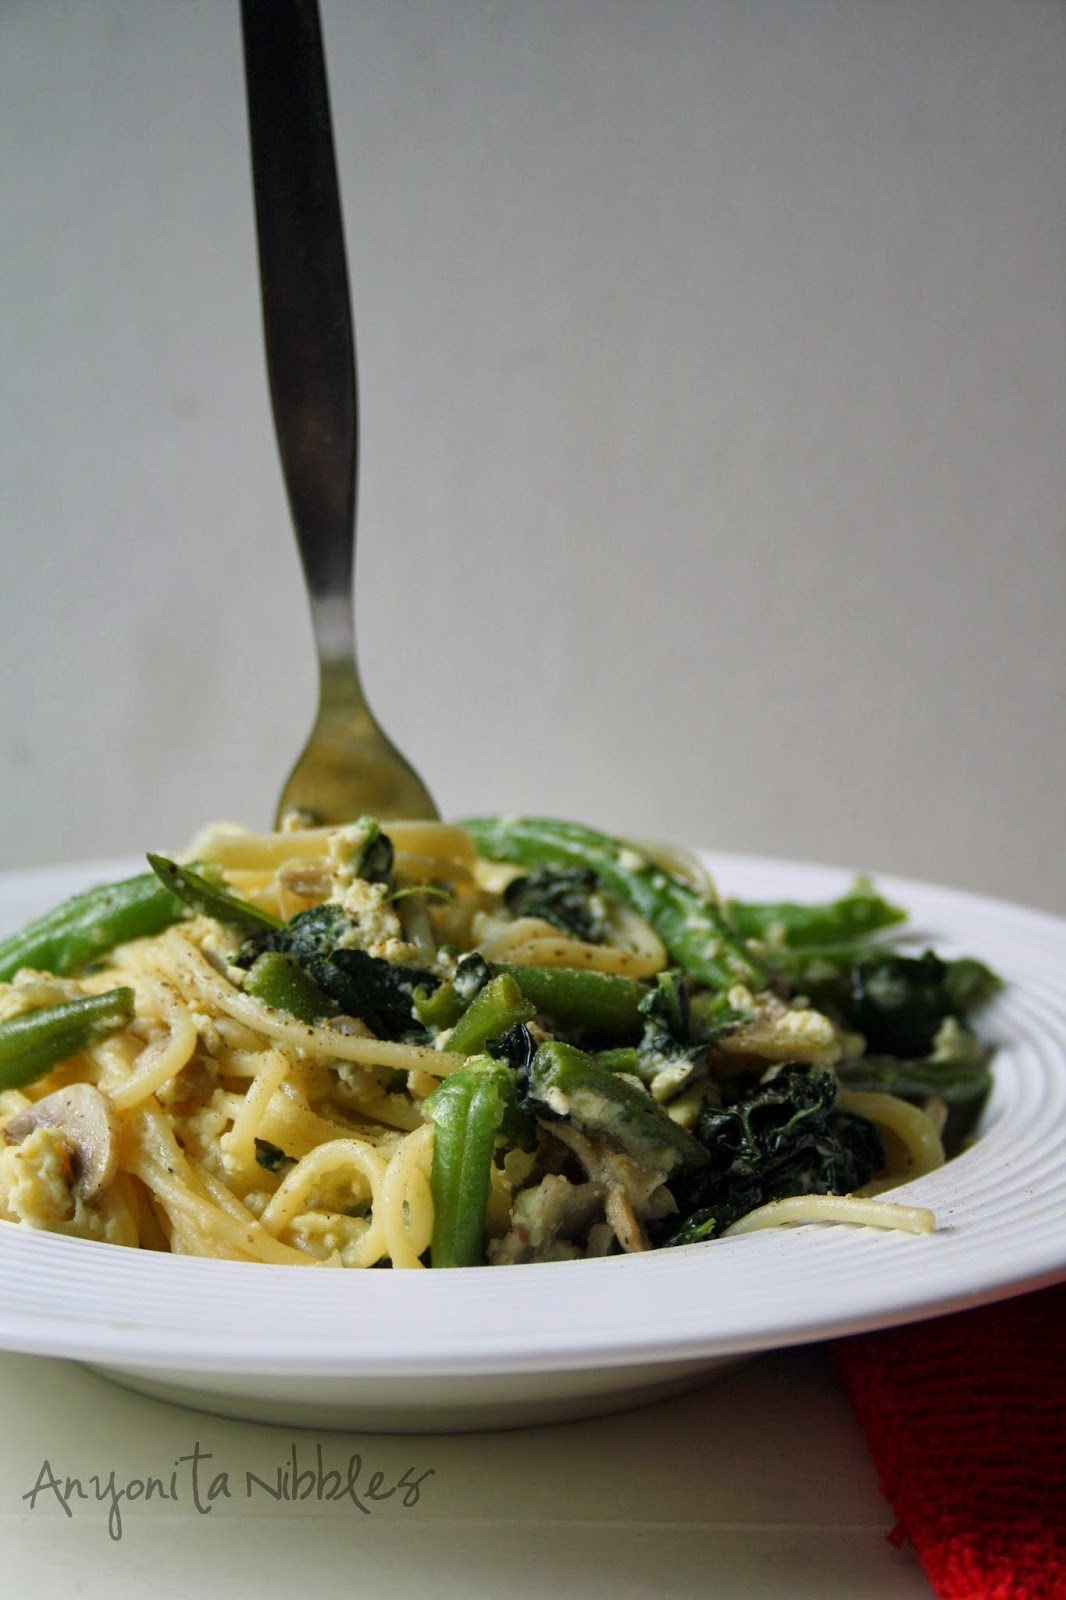 Veggie carbonara made with cavolo nero, green beans and mushrooms | Anyonita Nibbles